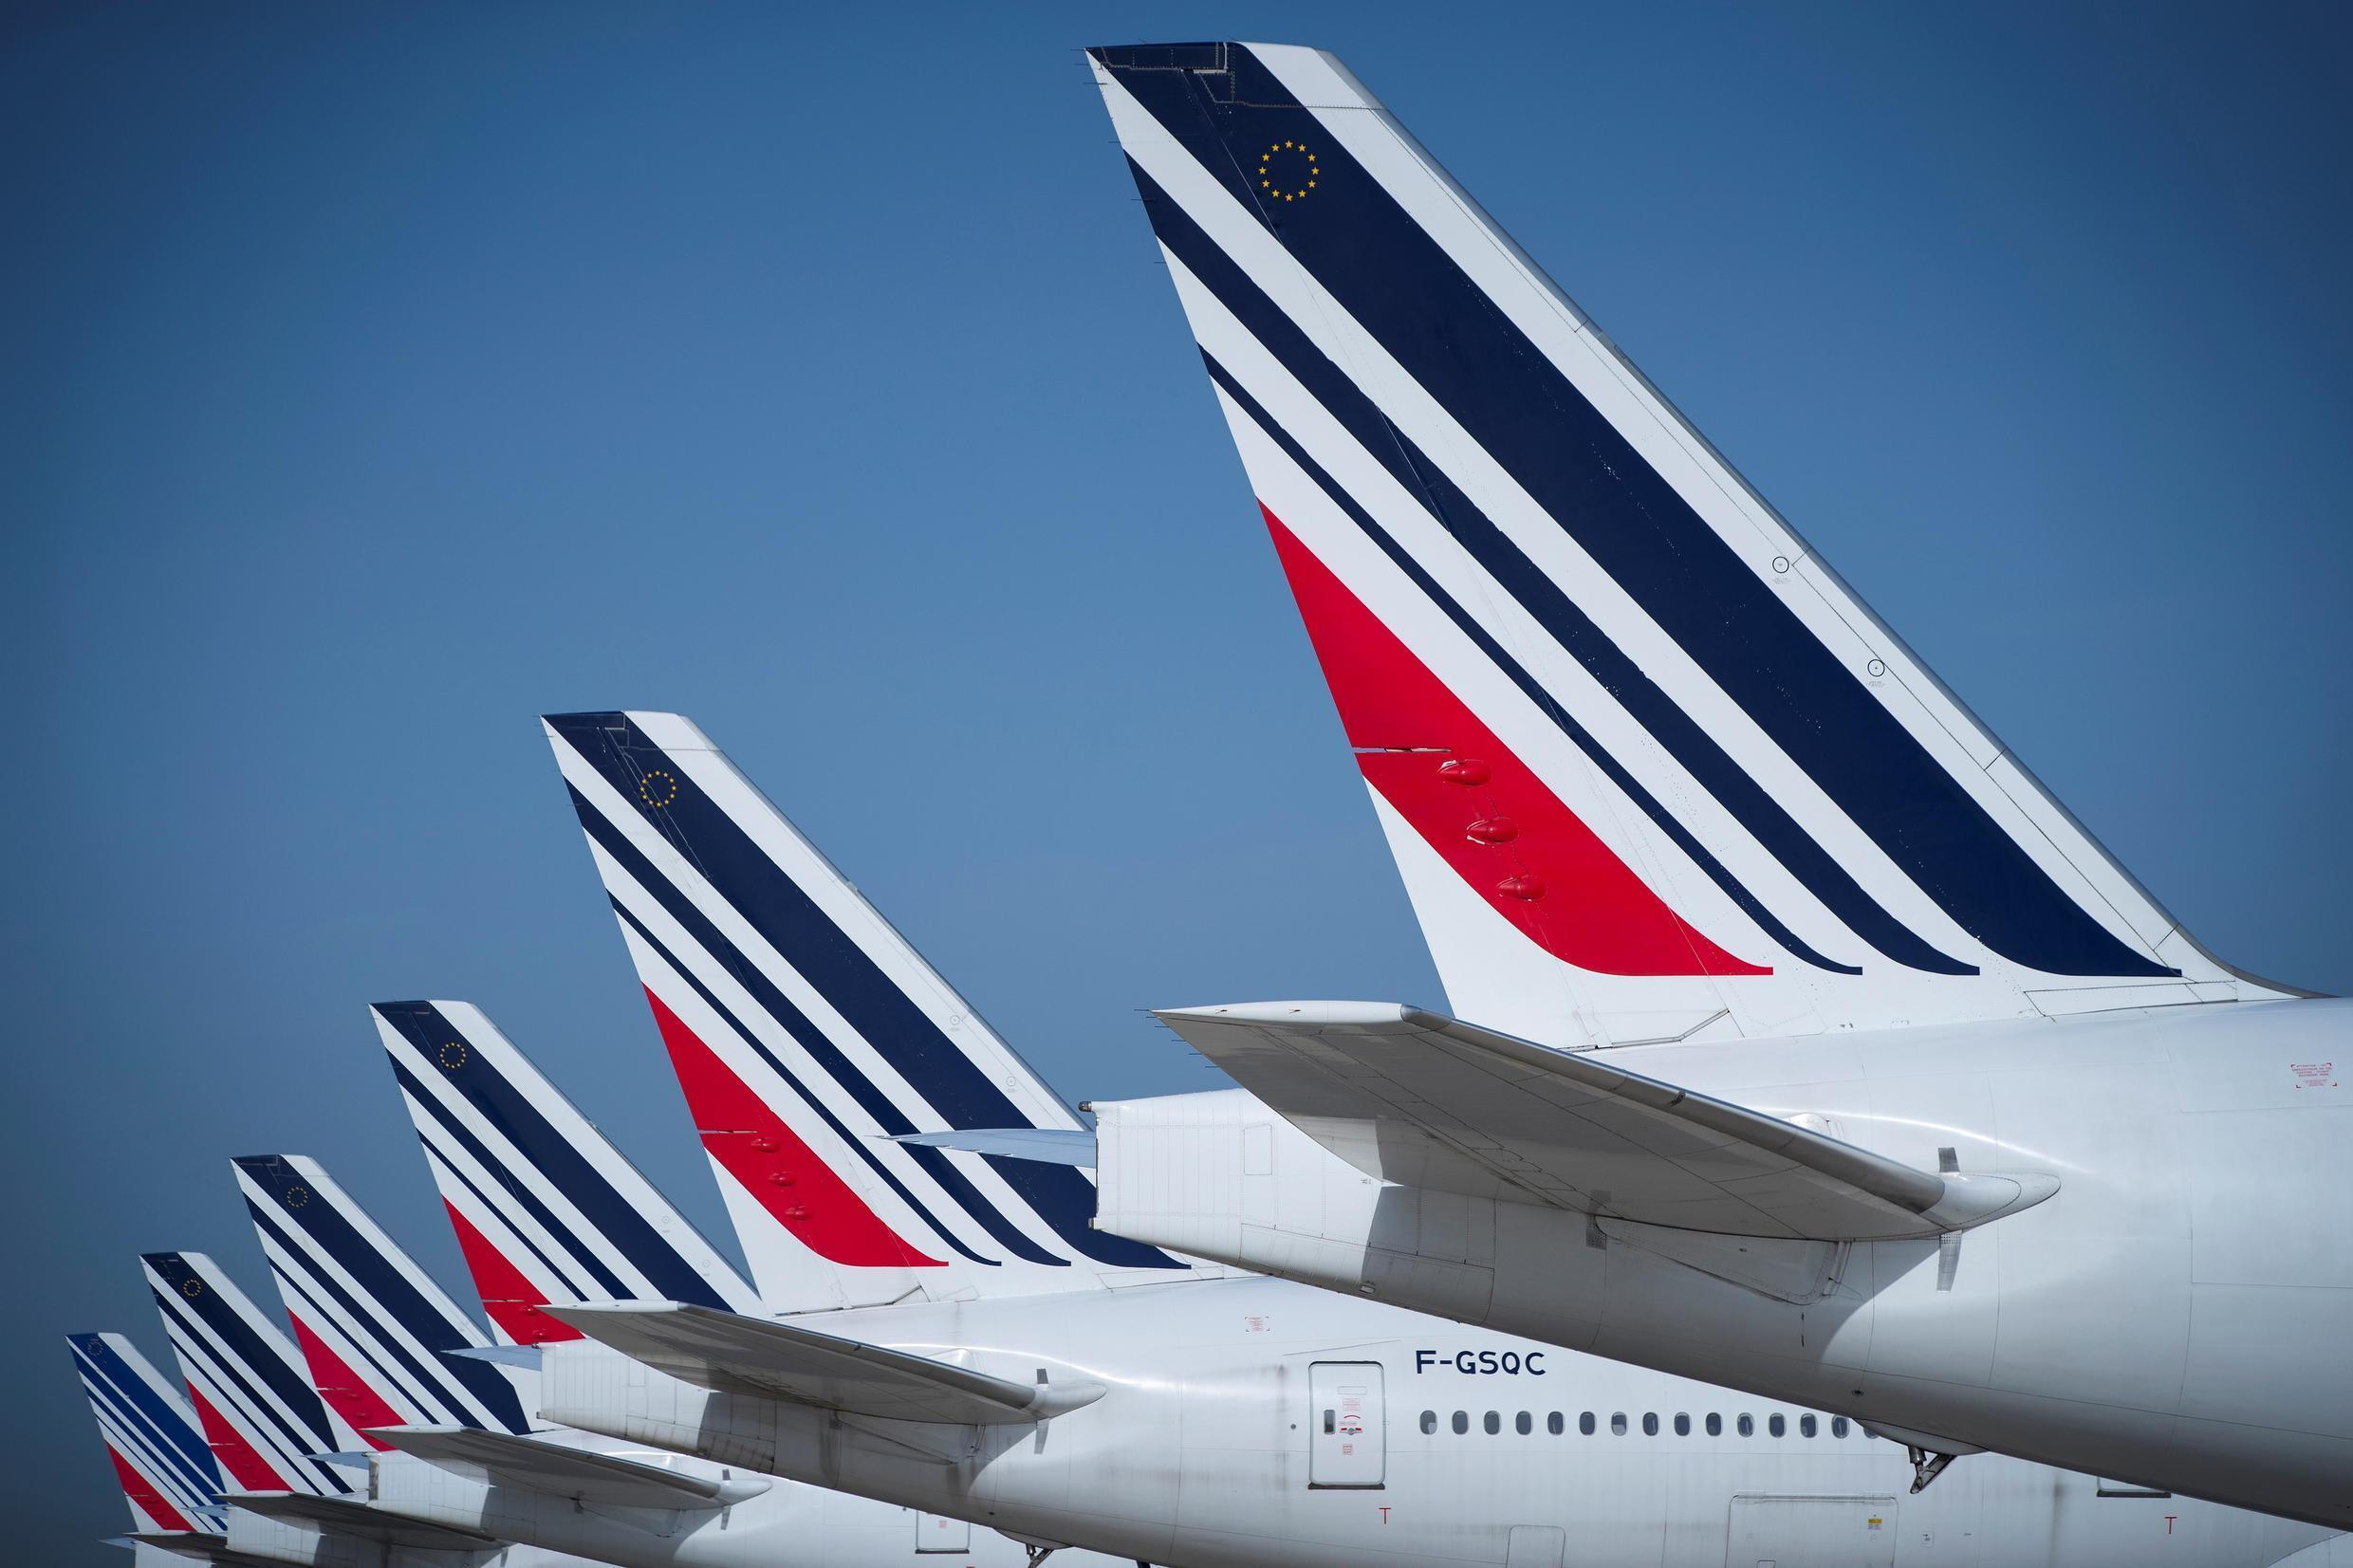 The planned cuts include some 1,000 layoffs at Air France's regional subsidiary Hop!, according to sources familiar with the matter.